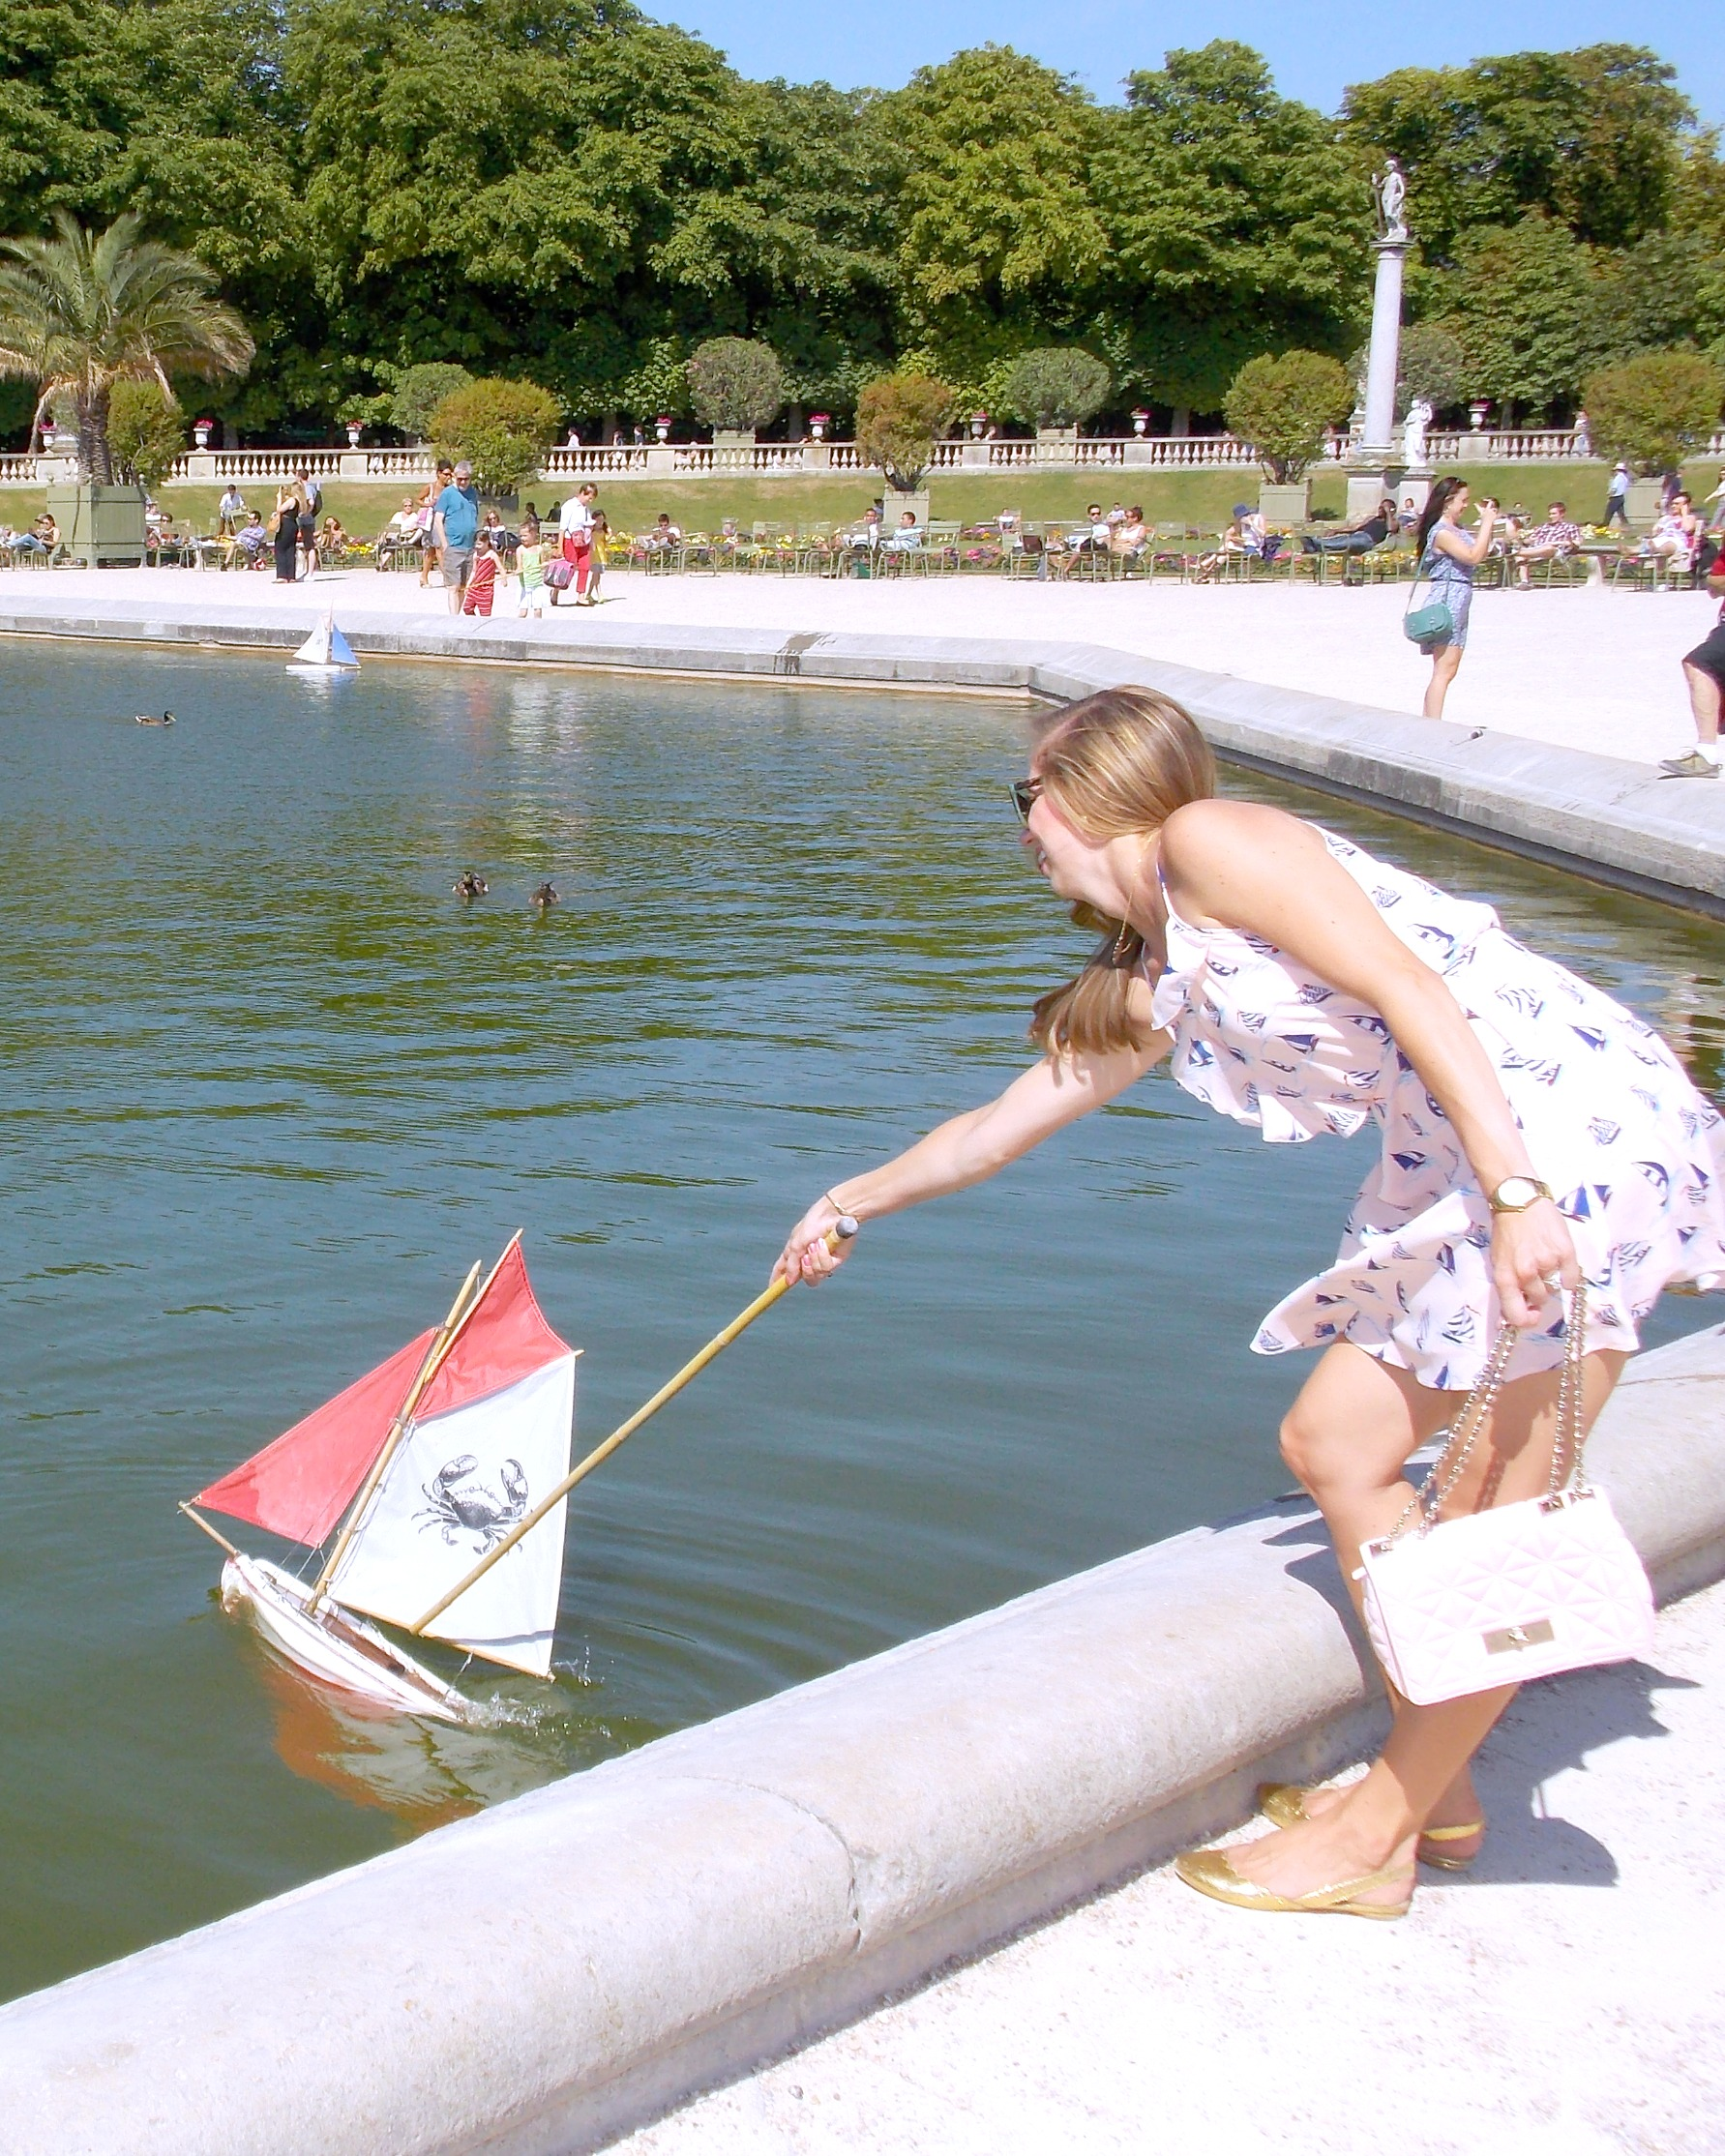 A woman getting her boat under sail in the  Jardins du Luxembourg.